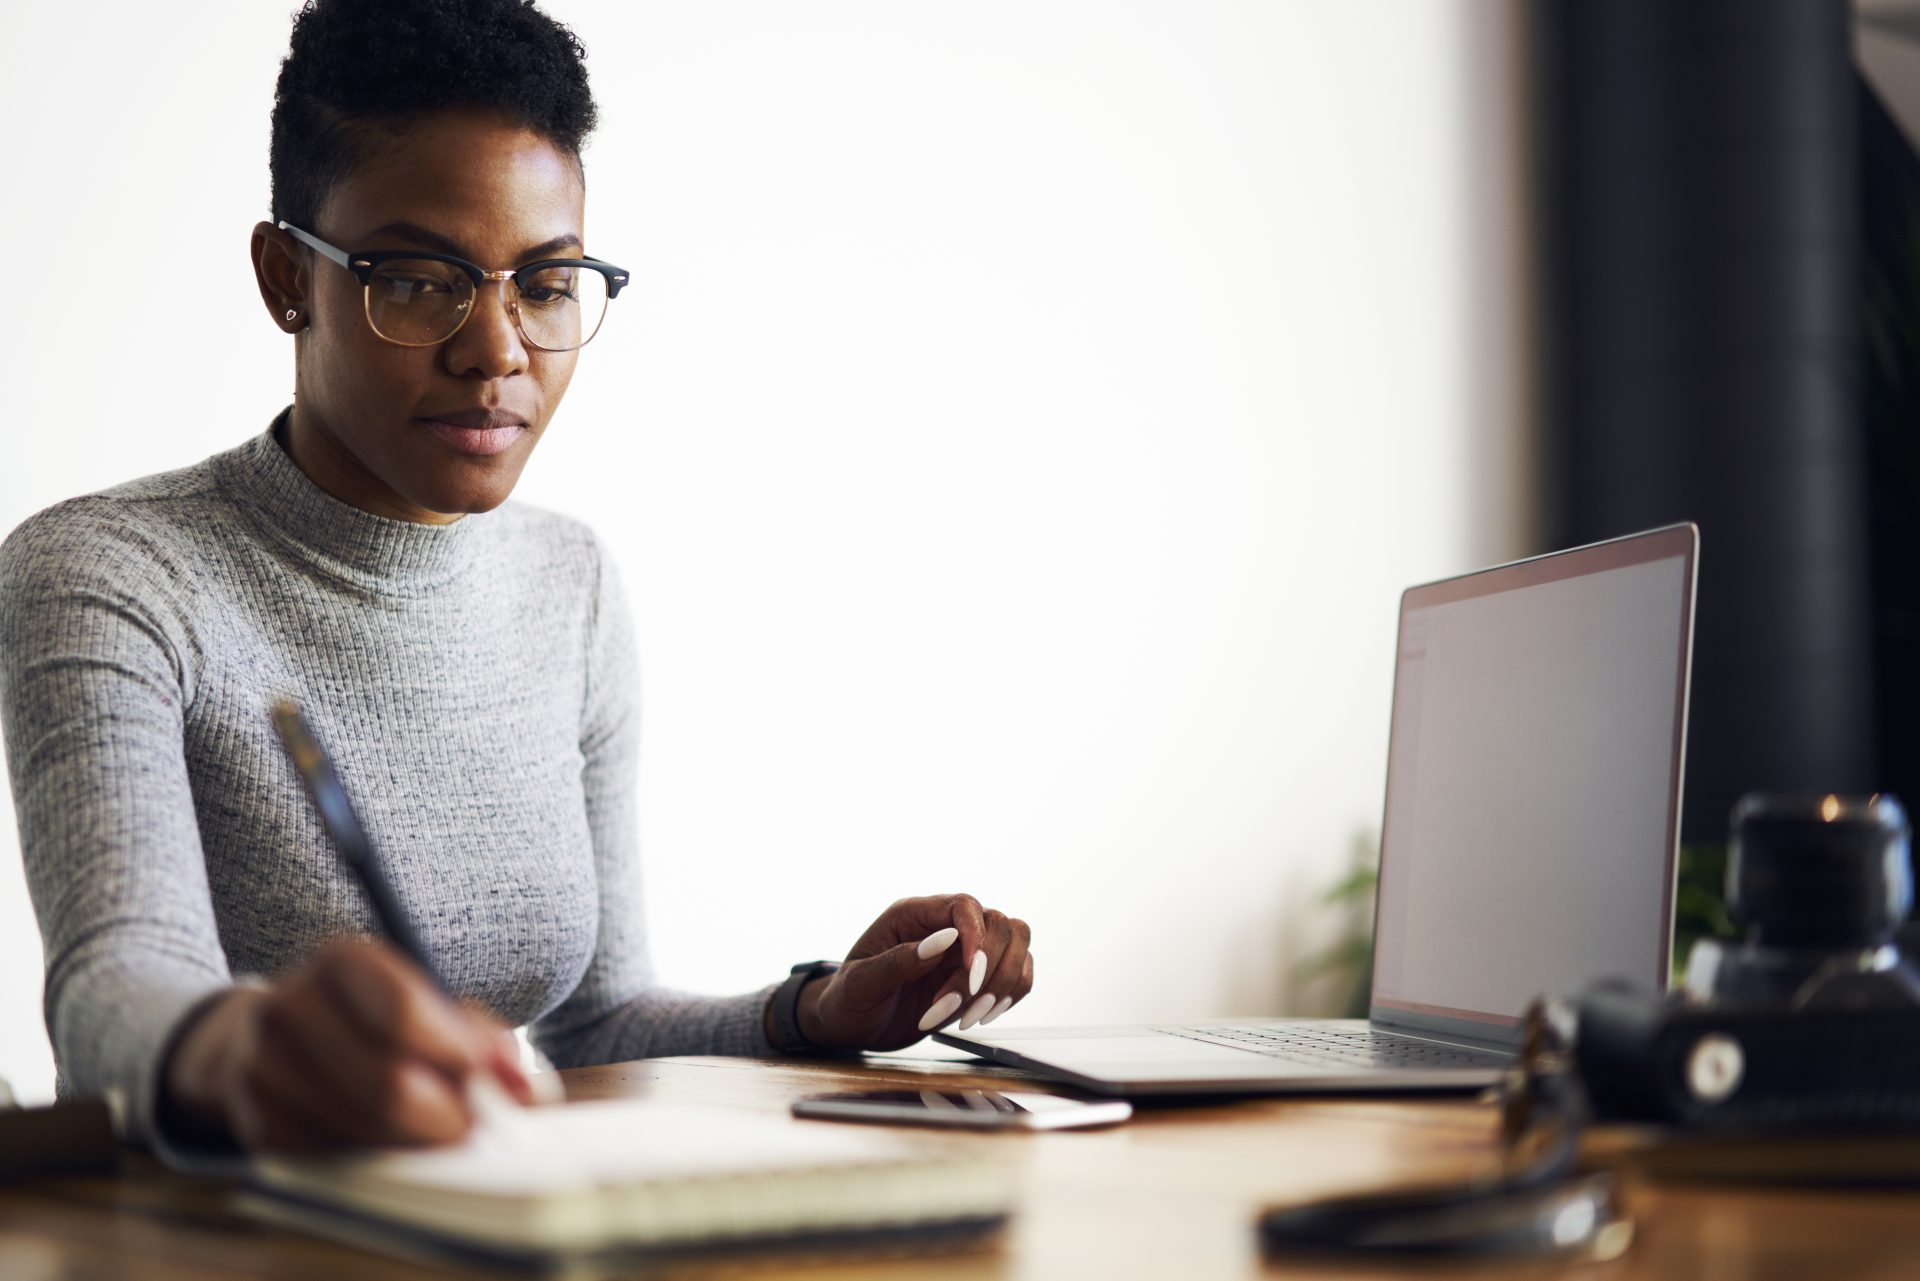 business insights Africa, Pensive prosperous afro american graphic designer concentrated on creating blueprint drawing sketch, skilled copywriter noting ideas for advertising campaign sitting near laptop with blank screen